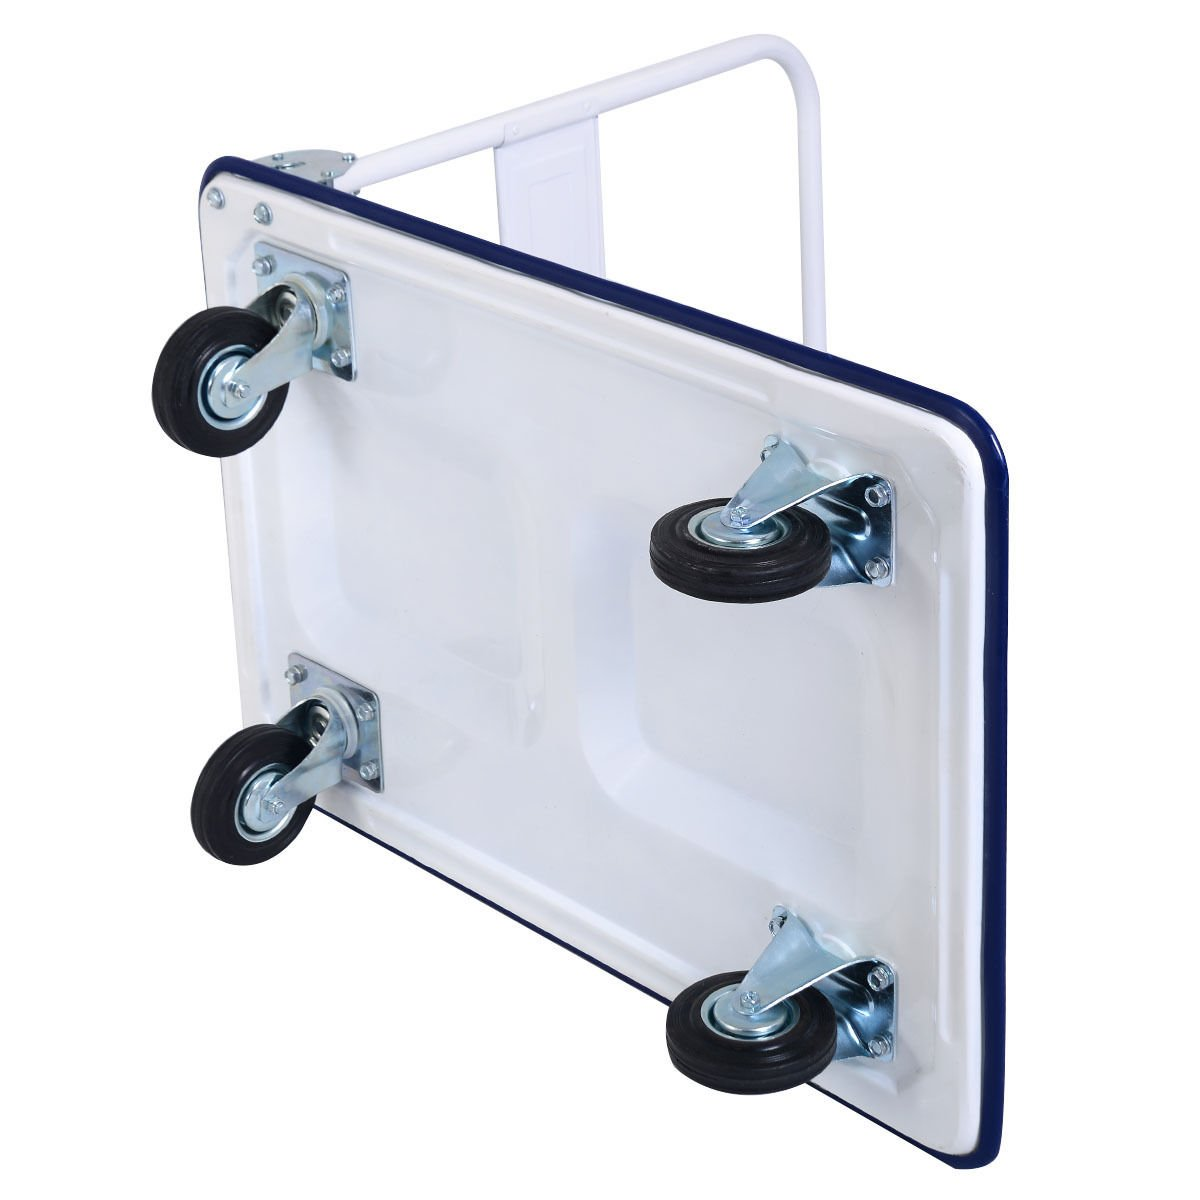 COLIBROX--660lbs Platform Cart Dolly Folding Foldable Moving Warehouse Push Hand Truck New Useful for home, outdoor, the office Stability of 4 wheels for smoothly loading Compact down to be suitable by COLIBROX